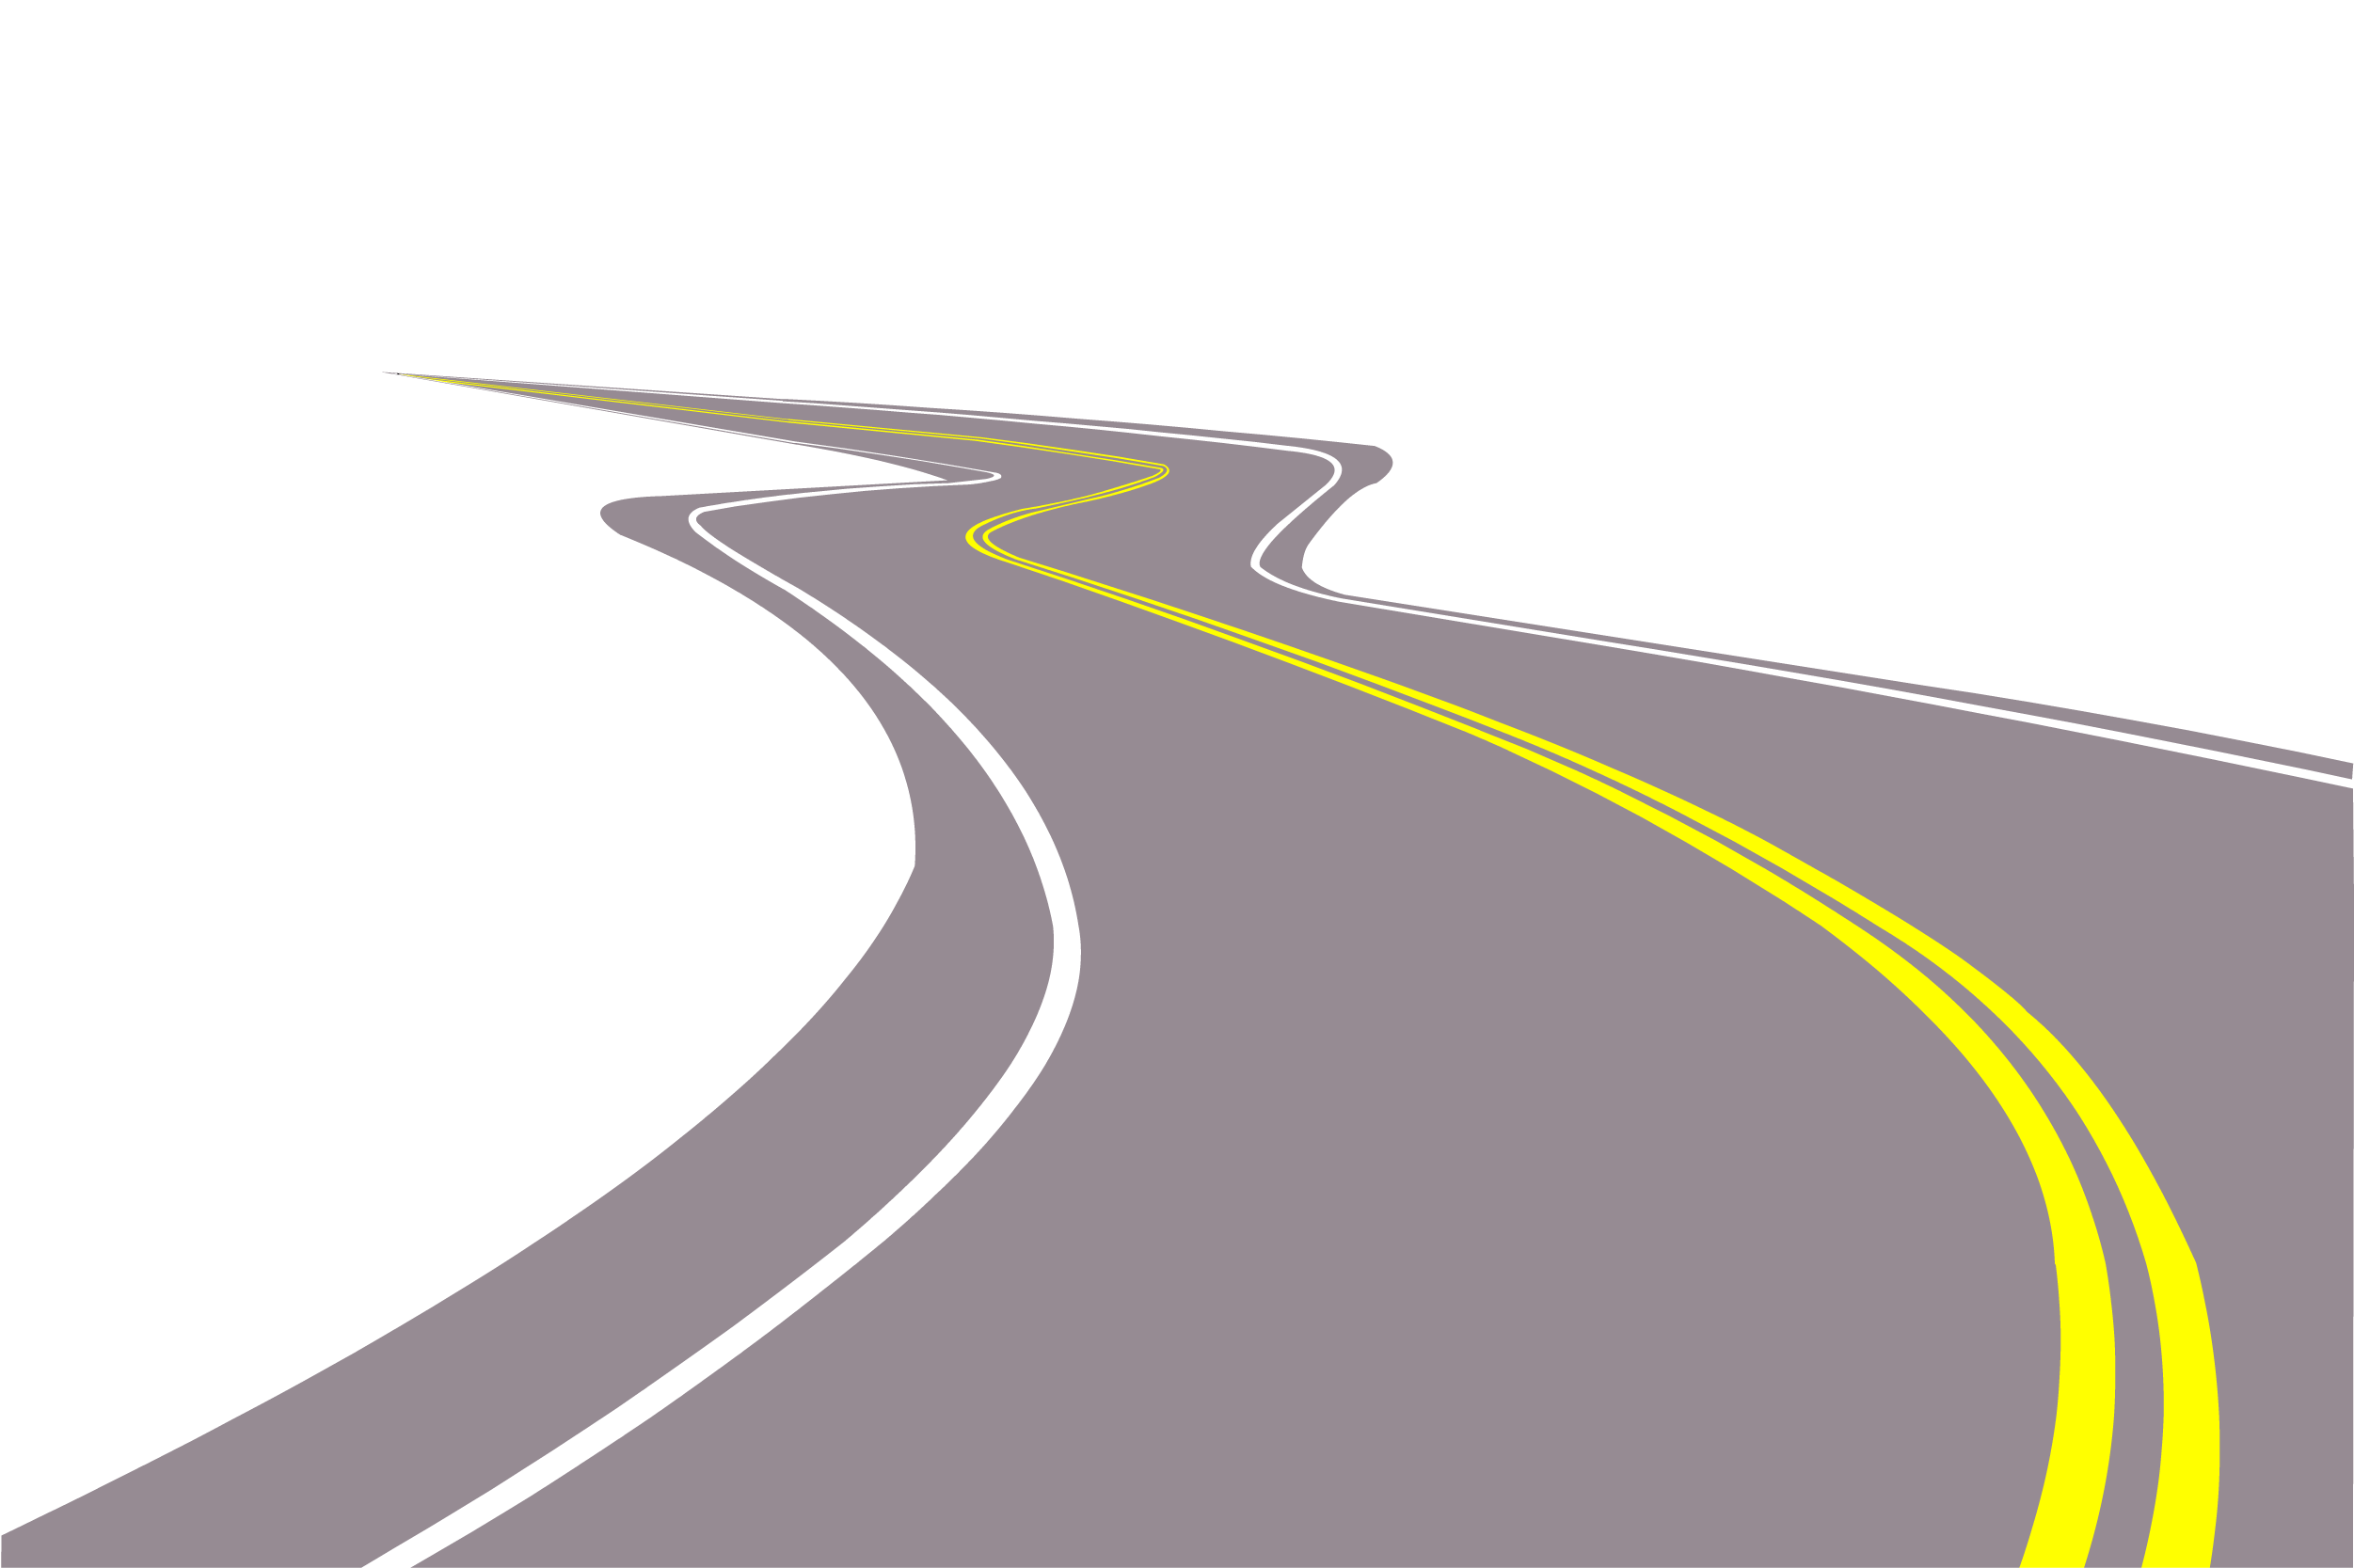 Clipart road perspective.